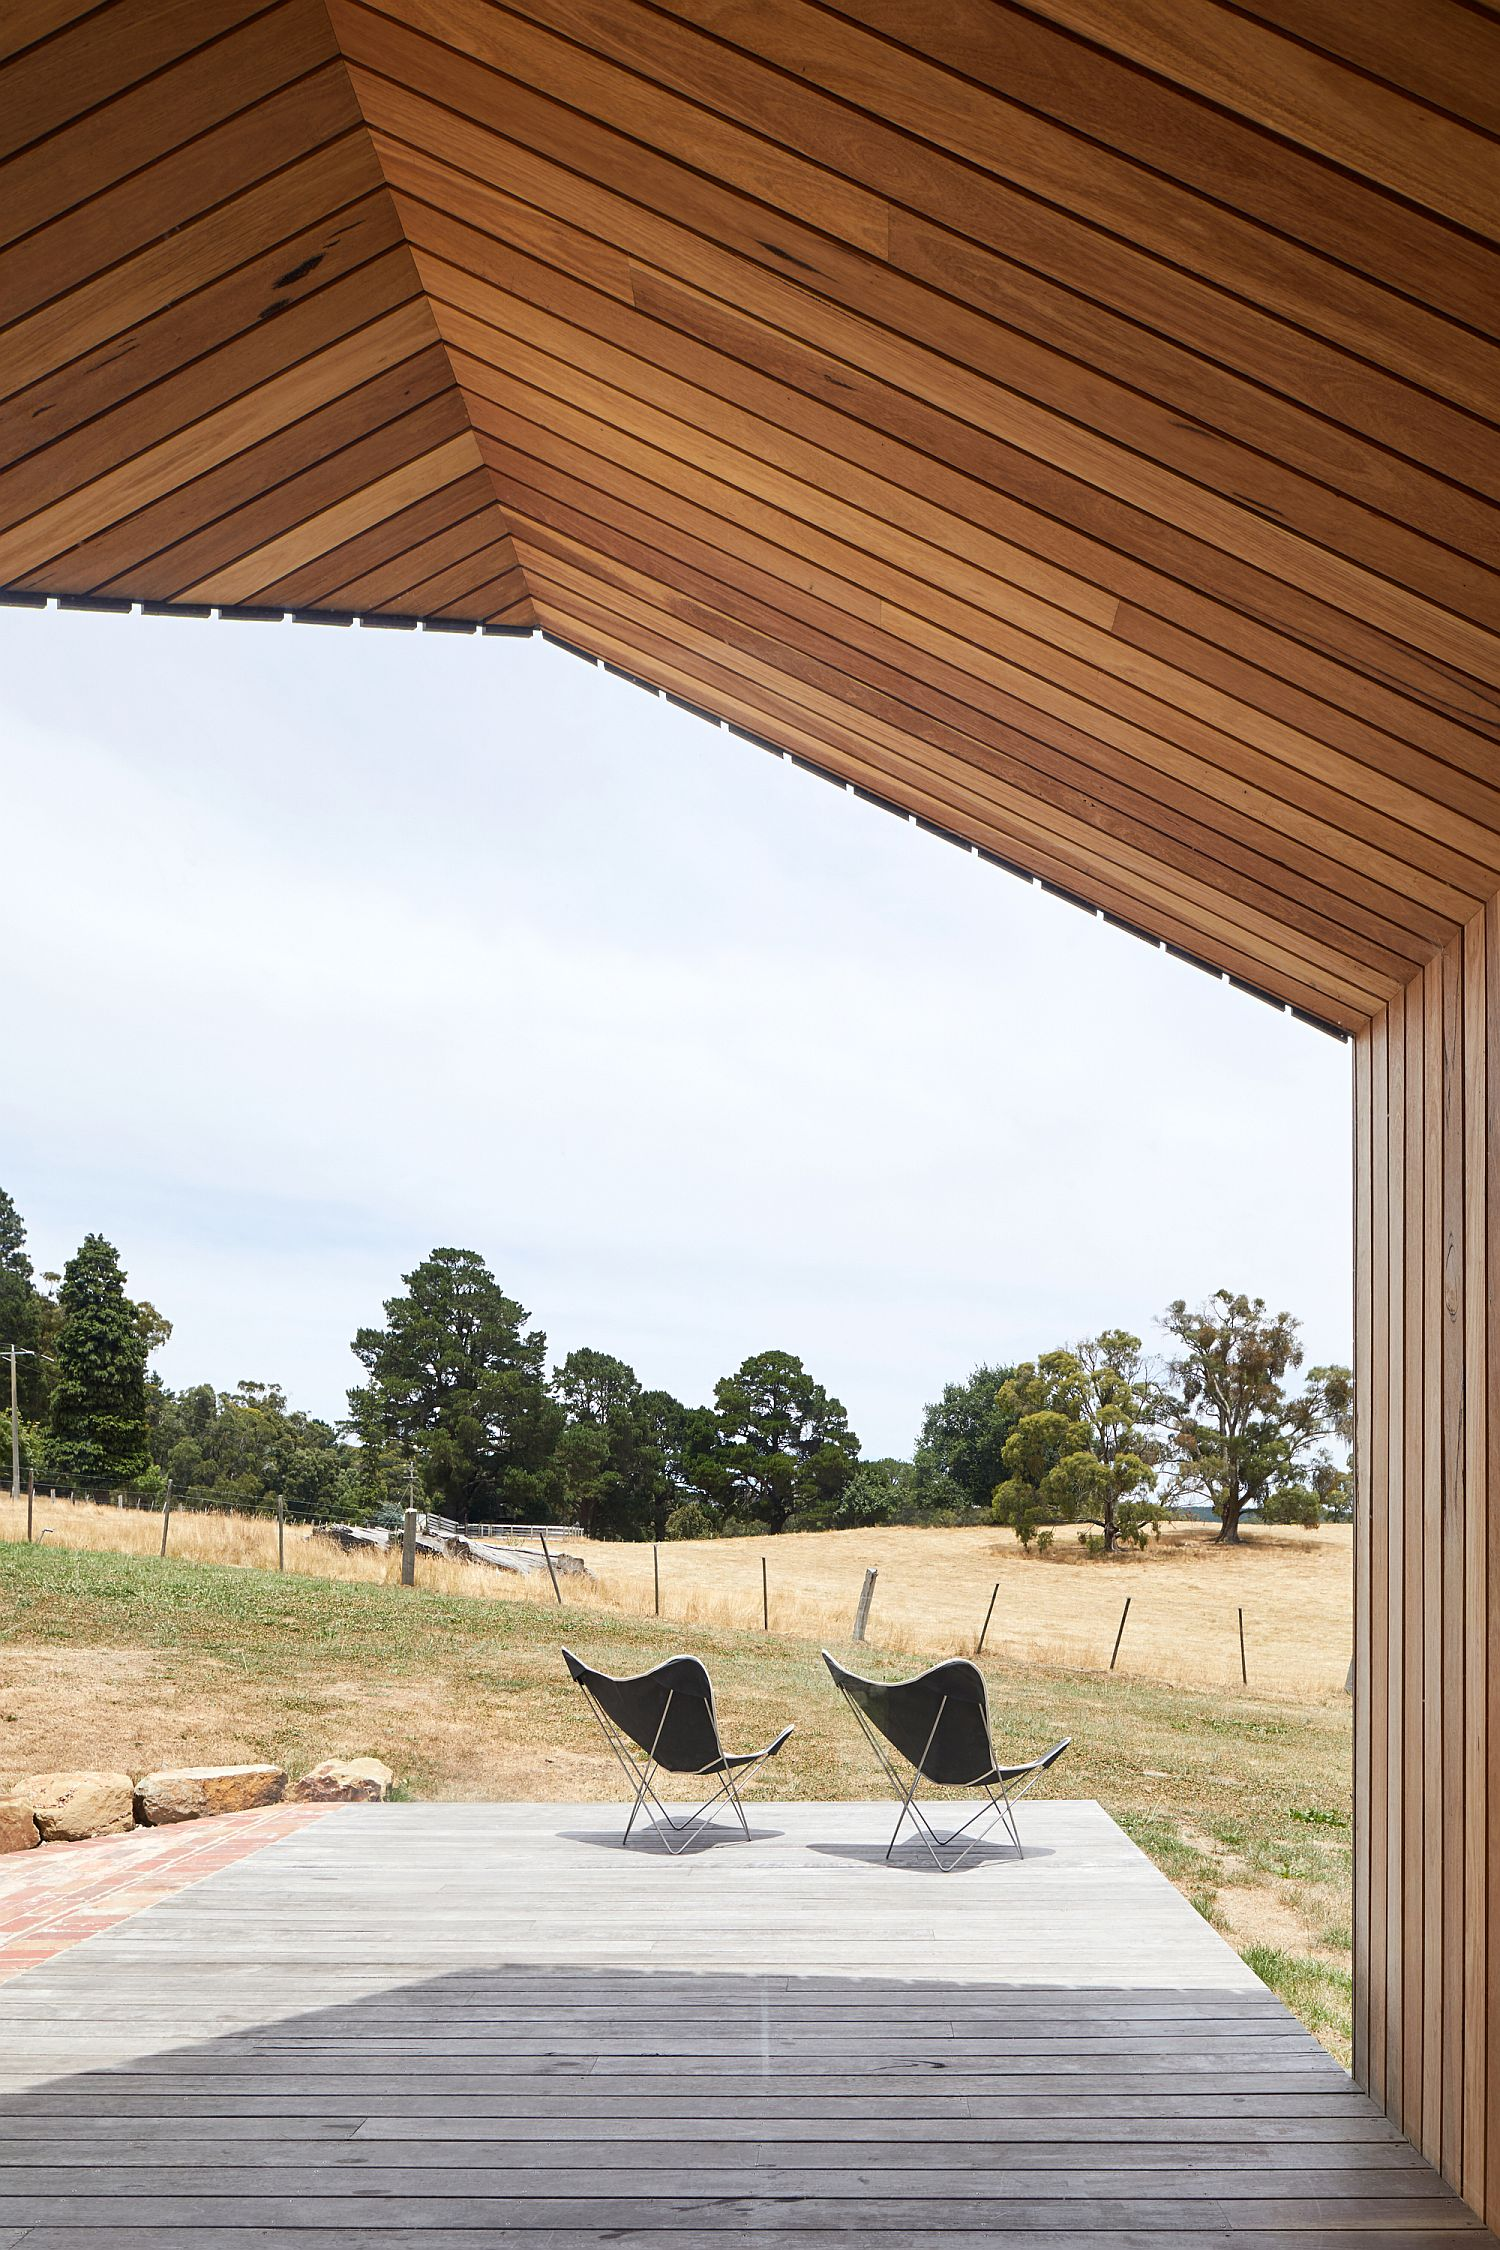 Deck-of-the-extension-offers-unabated-views-of-the-rolling-mountains